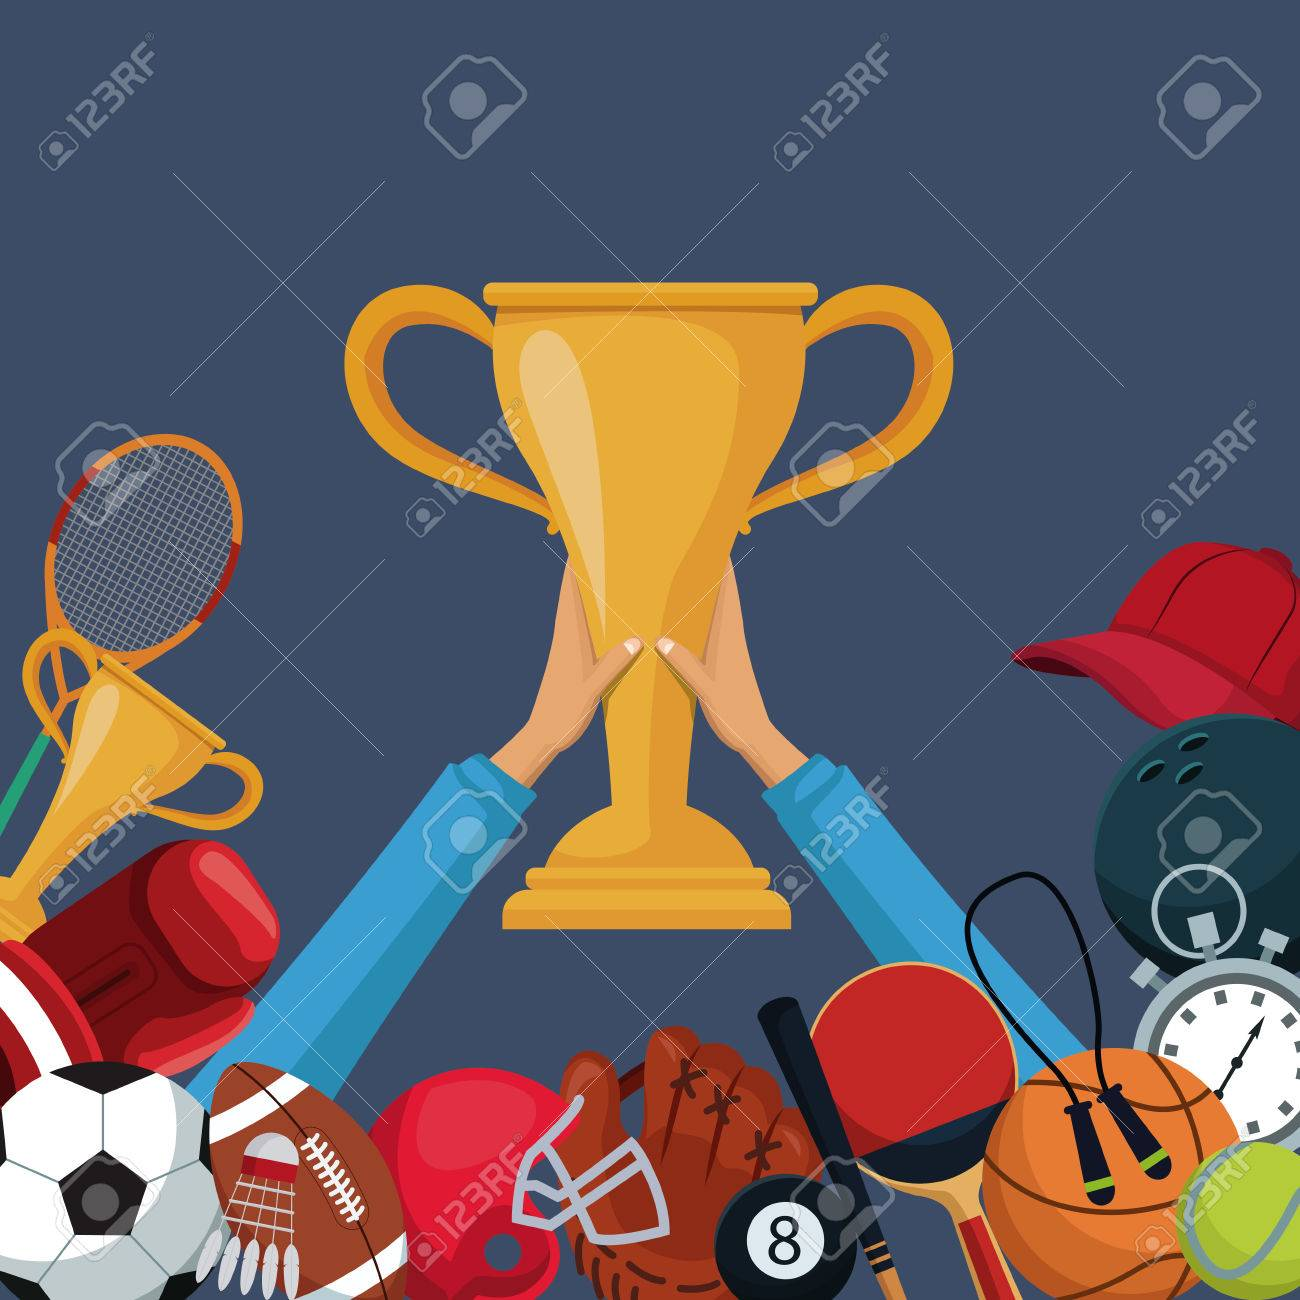 Color Background With Hands Holding Up A Golden Trophy Cup With Royalty Free Cliparts Vectors And Stock Illustration Image 83624028